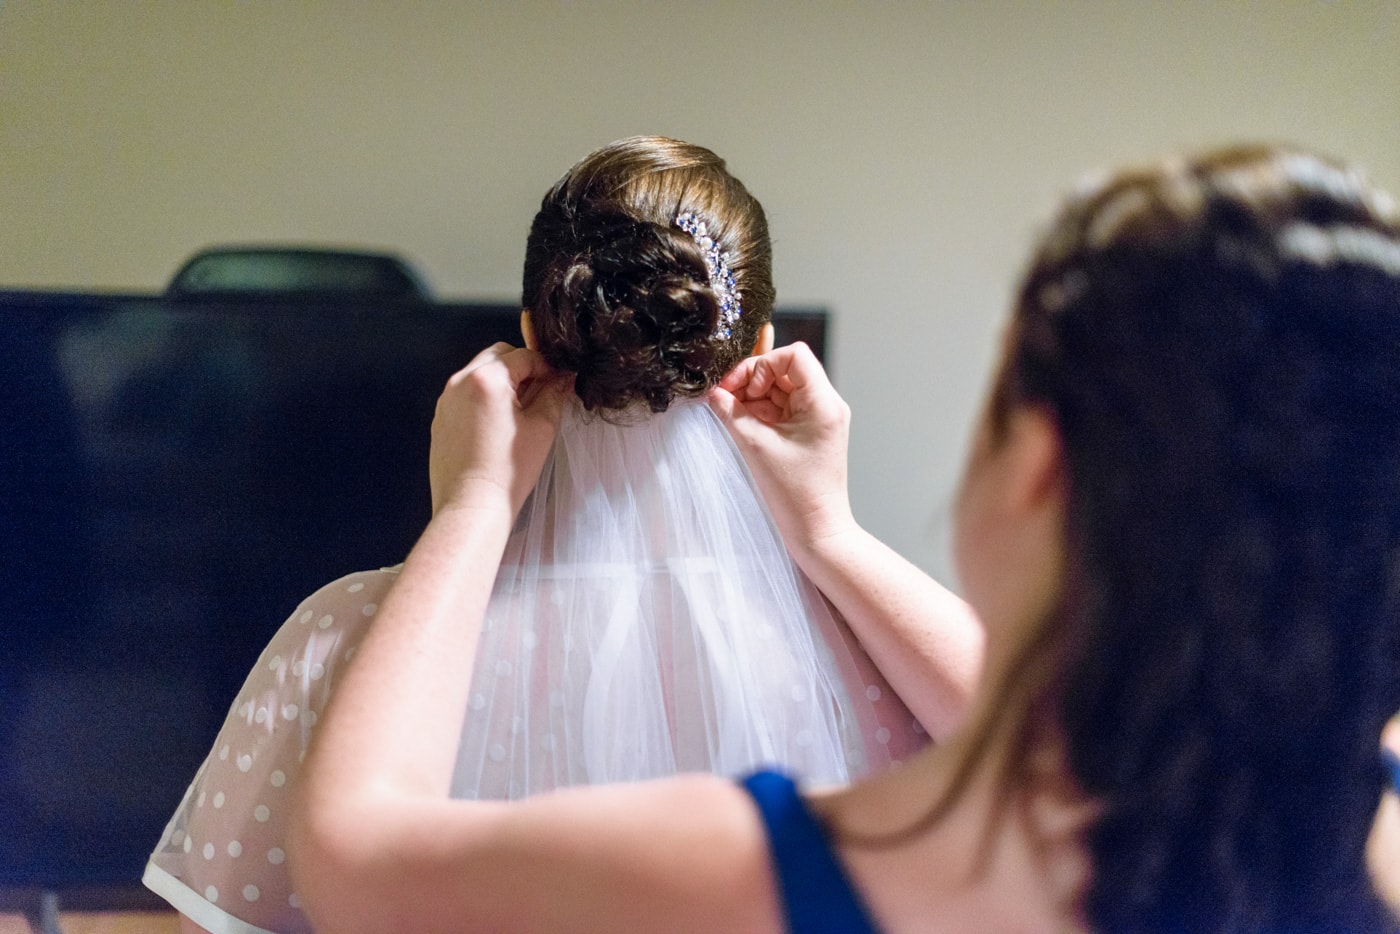 A bridesmaid puts on the bride's veil as they get ready in fairfax, virginia